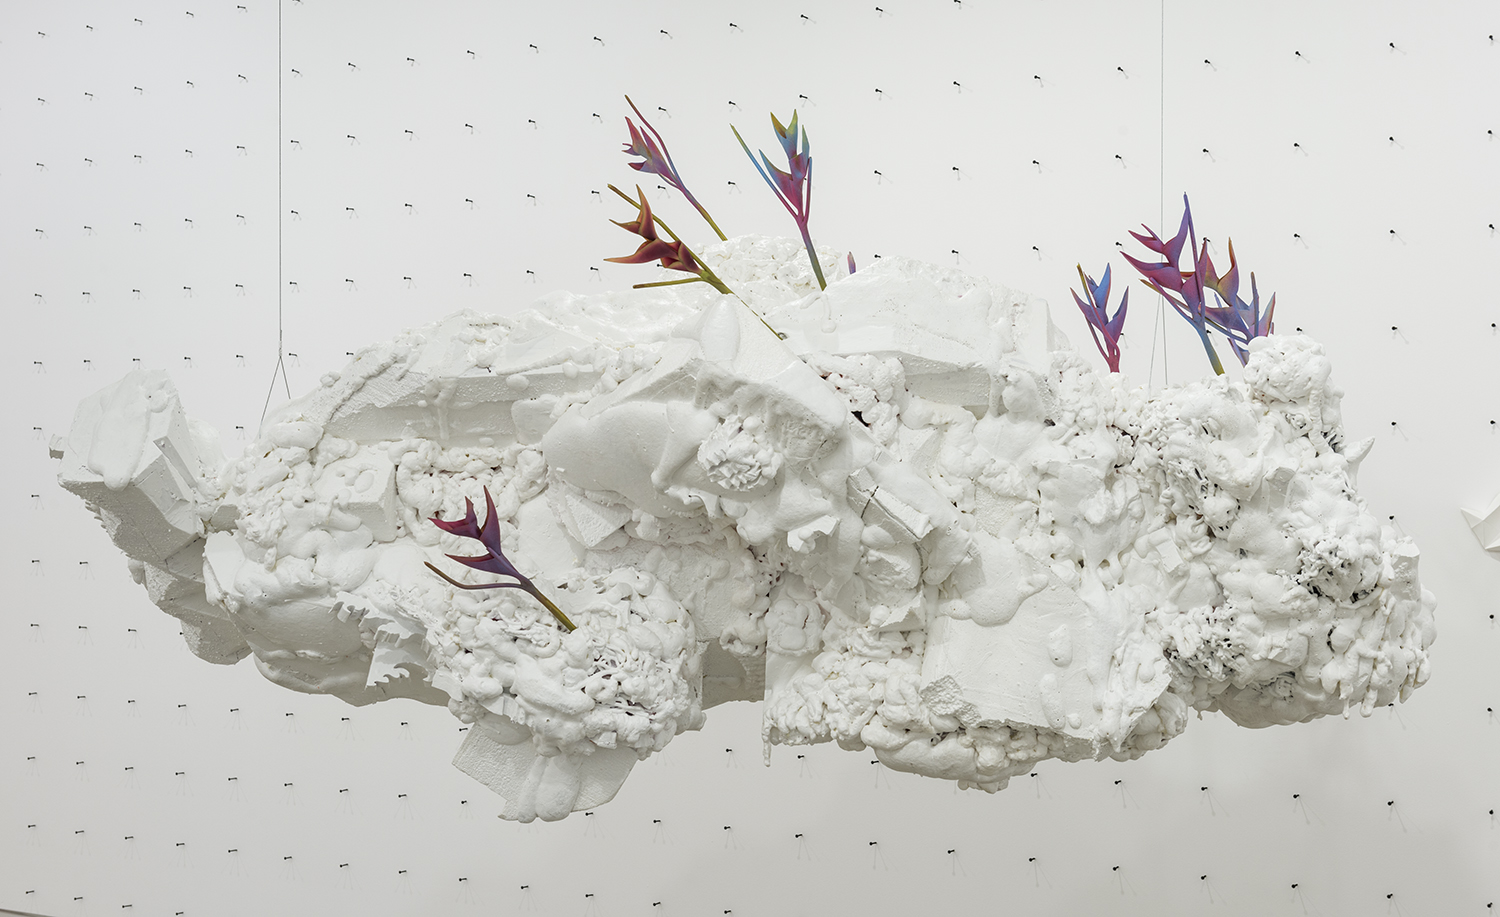 Philippe Caron Lefebvre,  Patriarche,  2016, Polyurethane foam, polystyrene, paint and artificial flowers , variable dimensions